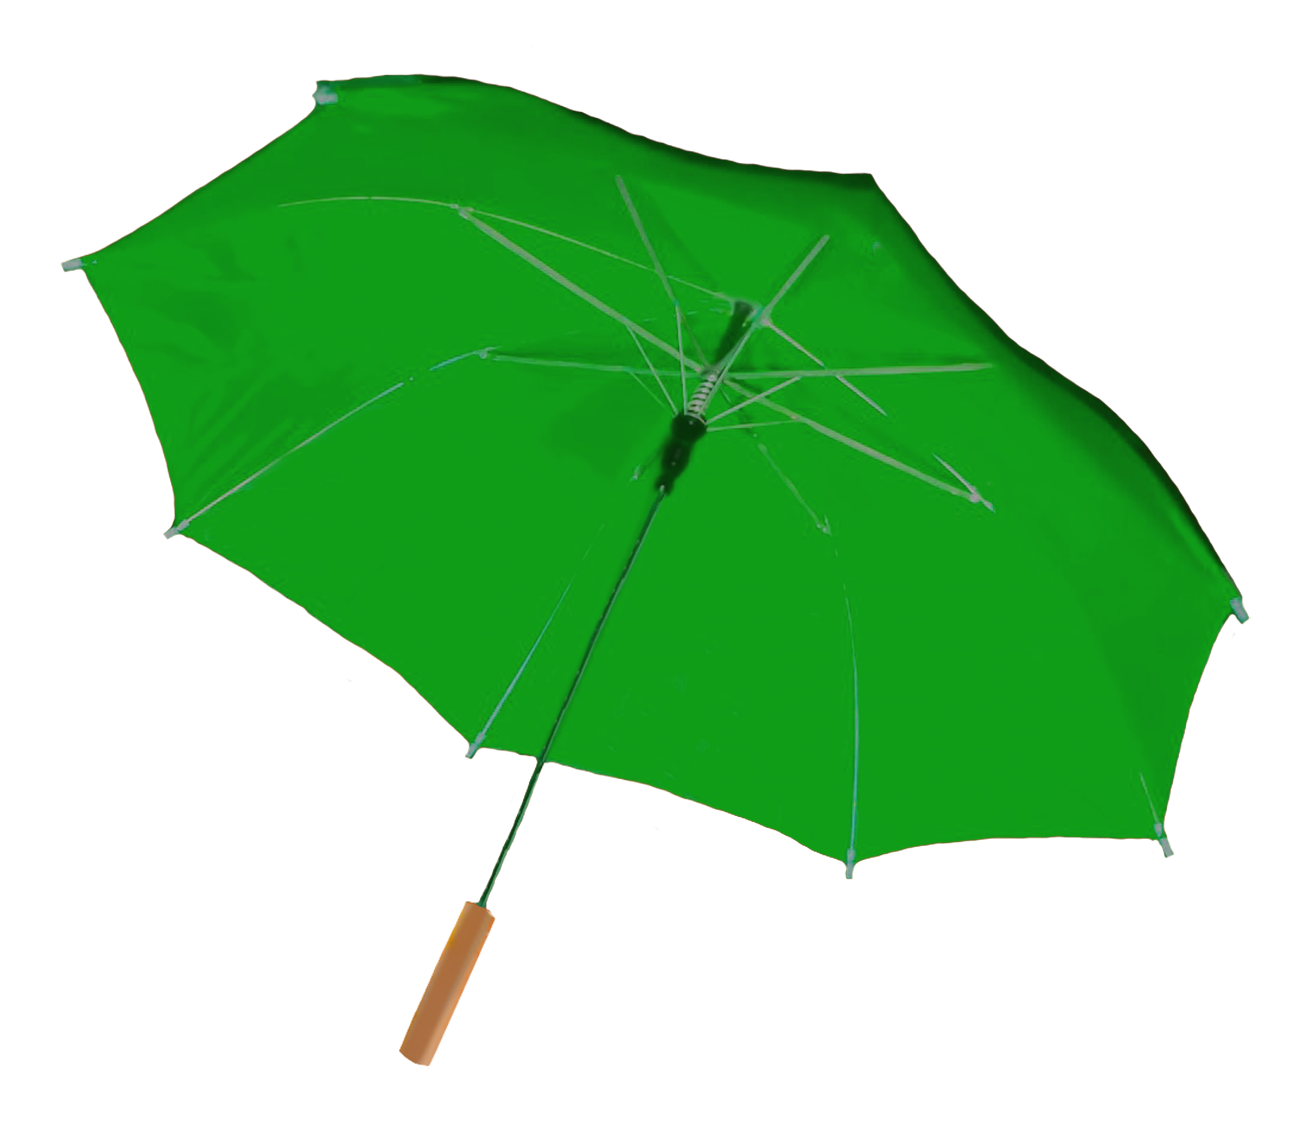 green umbrella clipart